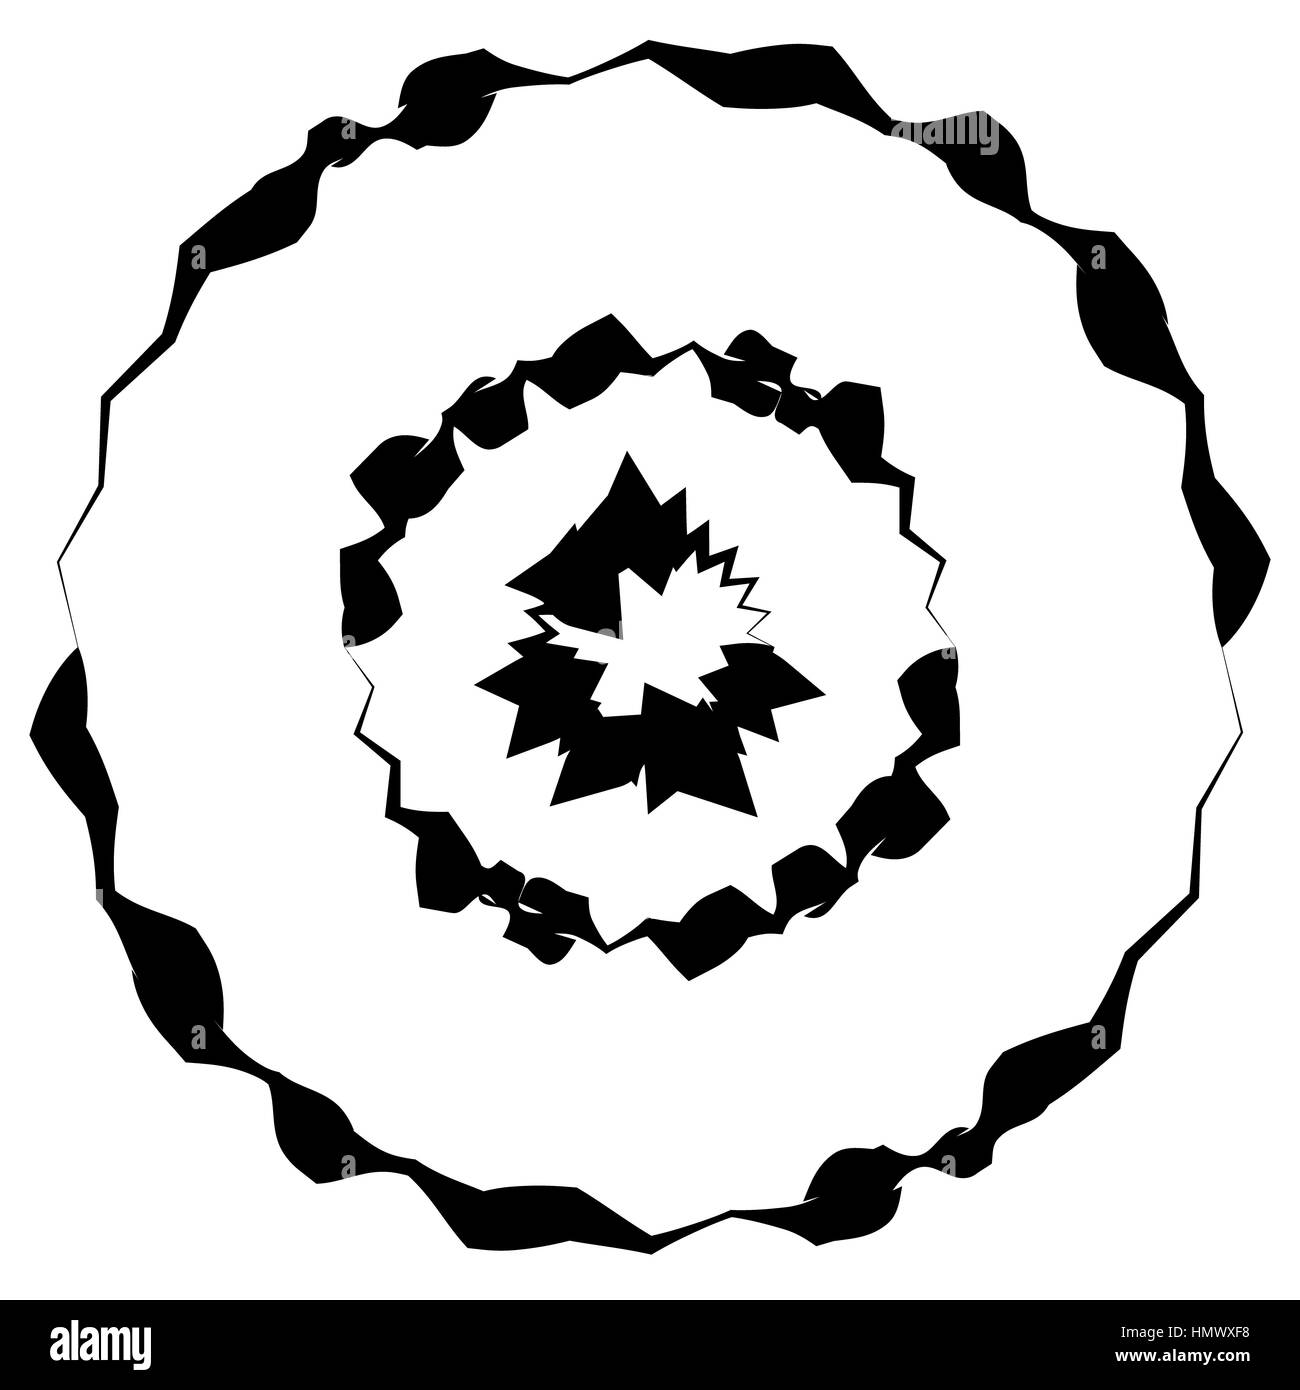 Concentric circles, rings with deformation. Geometric circular element - Stock Image